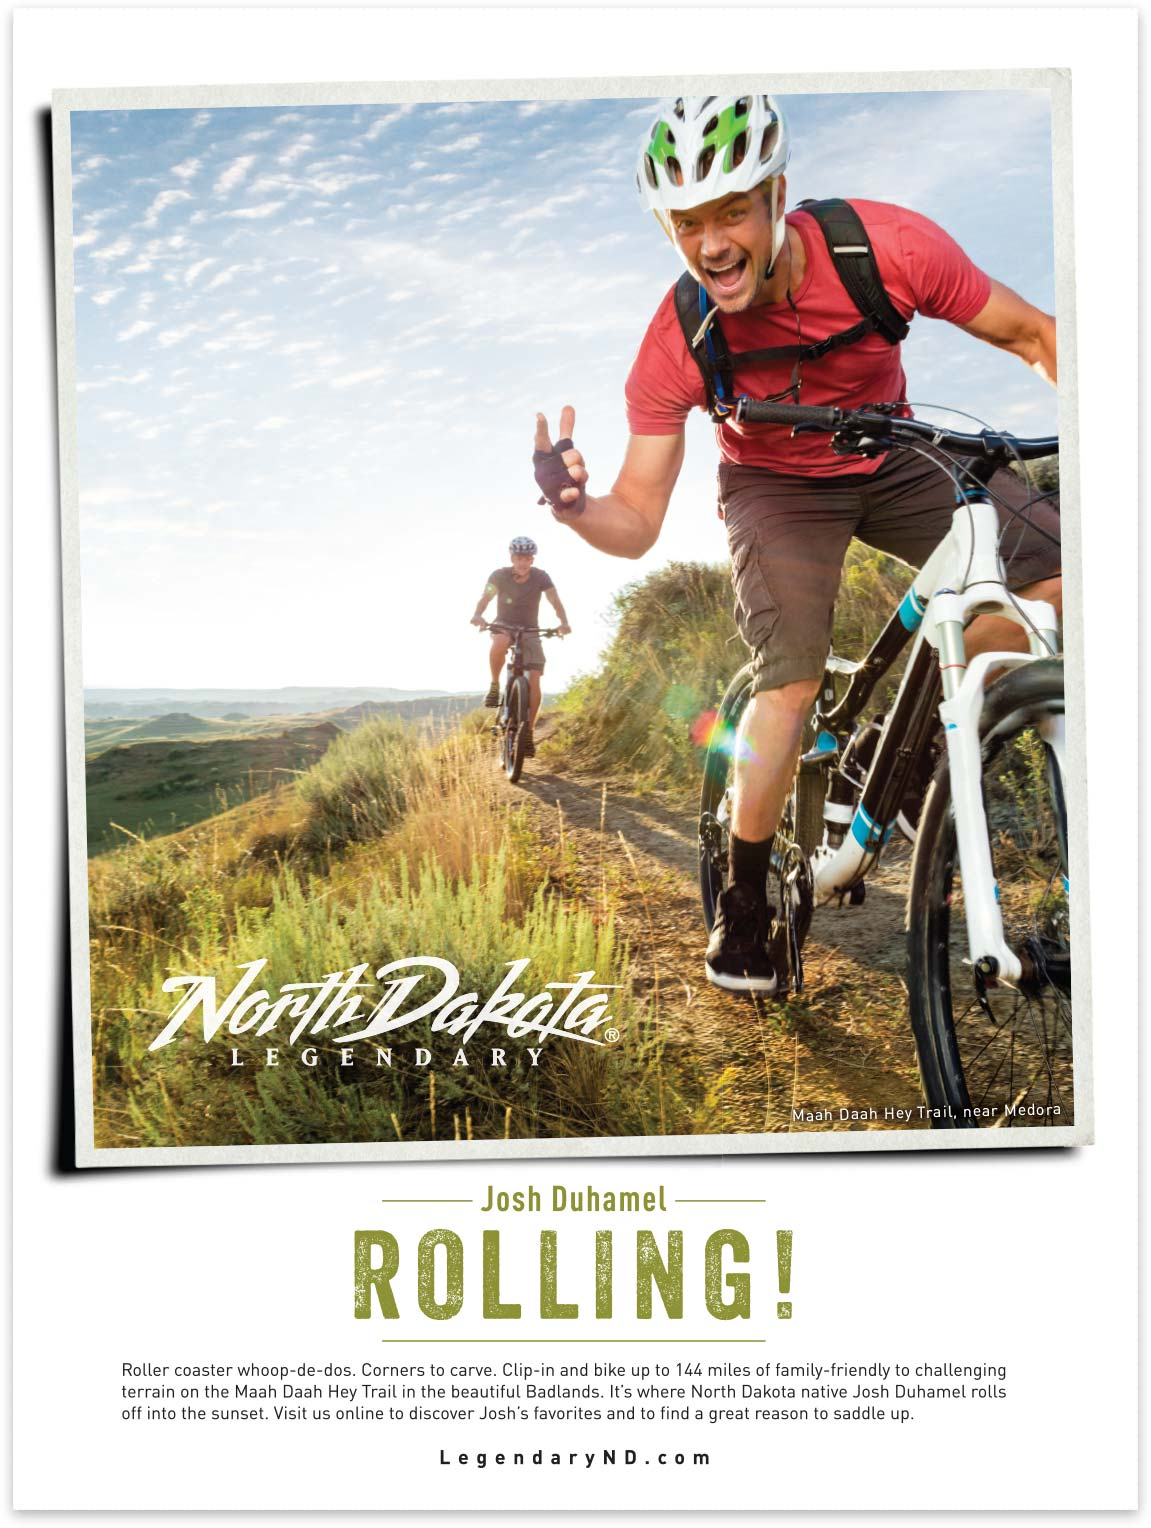 North Dakota Tourism Biking